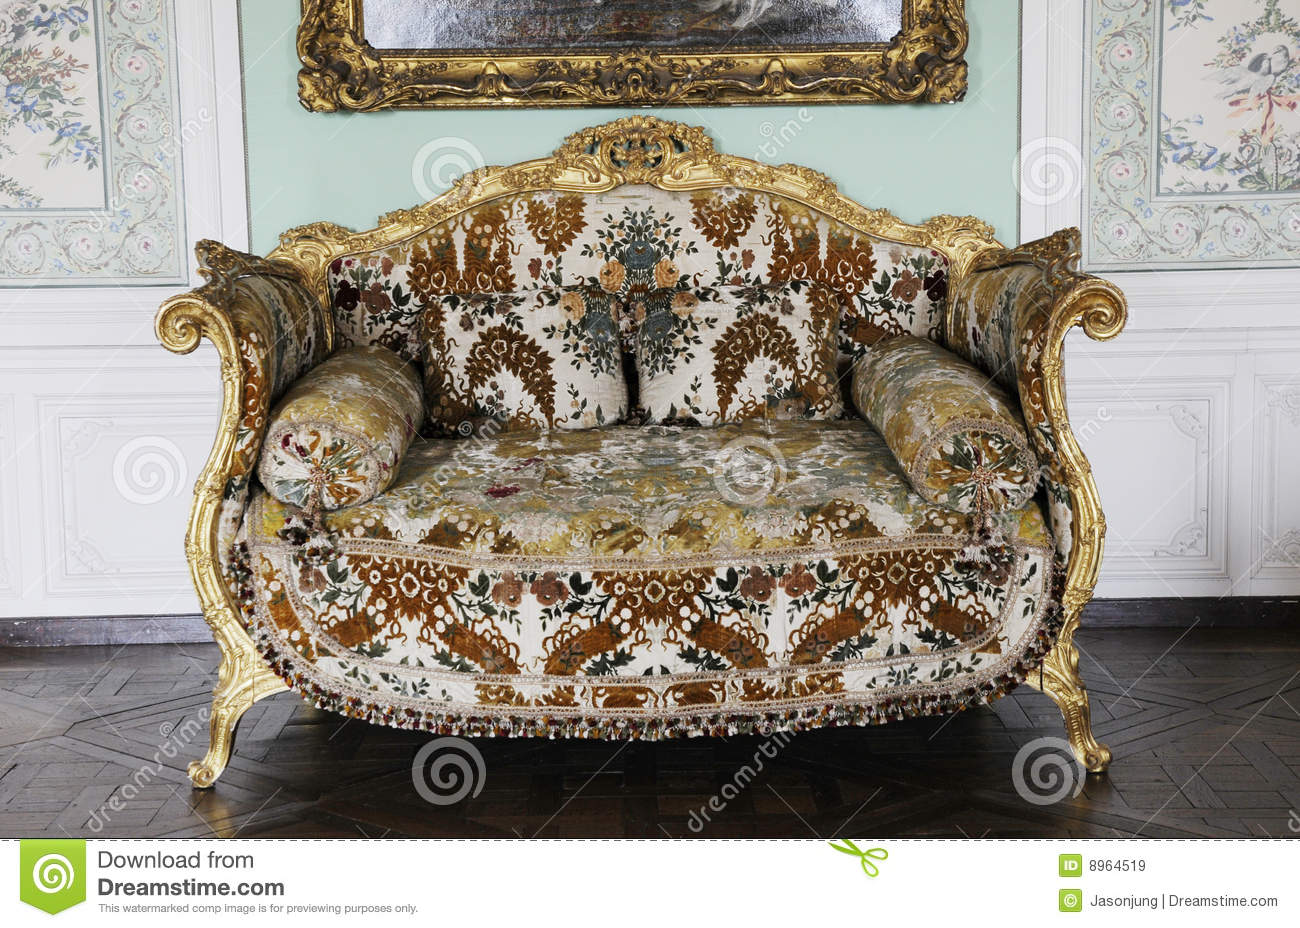 Royalty Free Stock Photo. Download Luxury Furniture Of Royal Palace ...